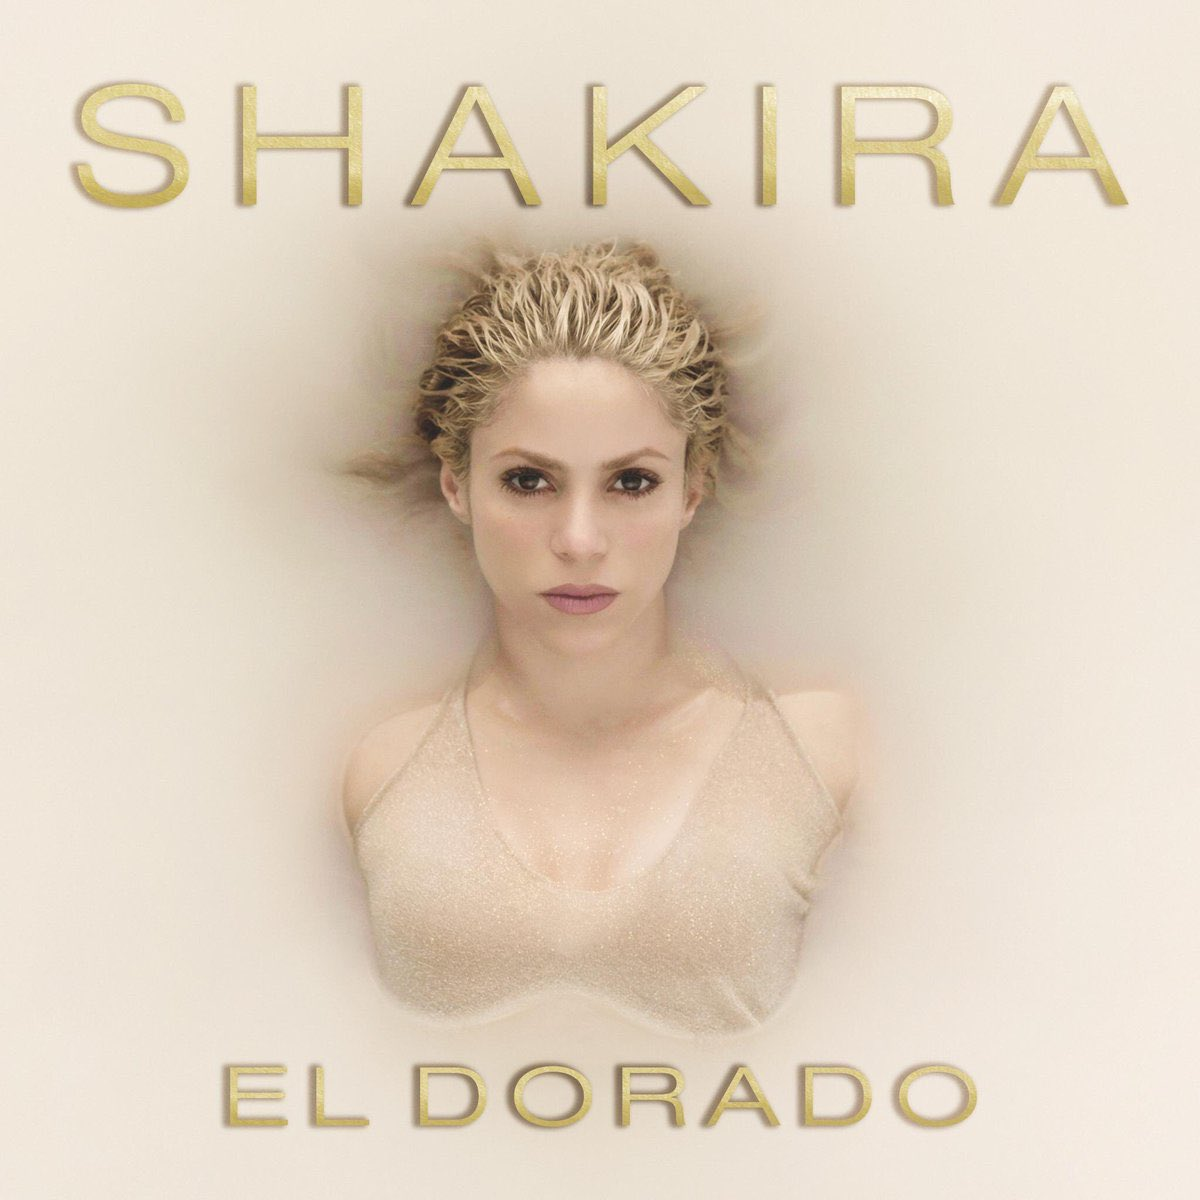 'El Dorado' by @Shakira has reached 2 BILLION streams on Spotify. This is her most streamed album on the platform.